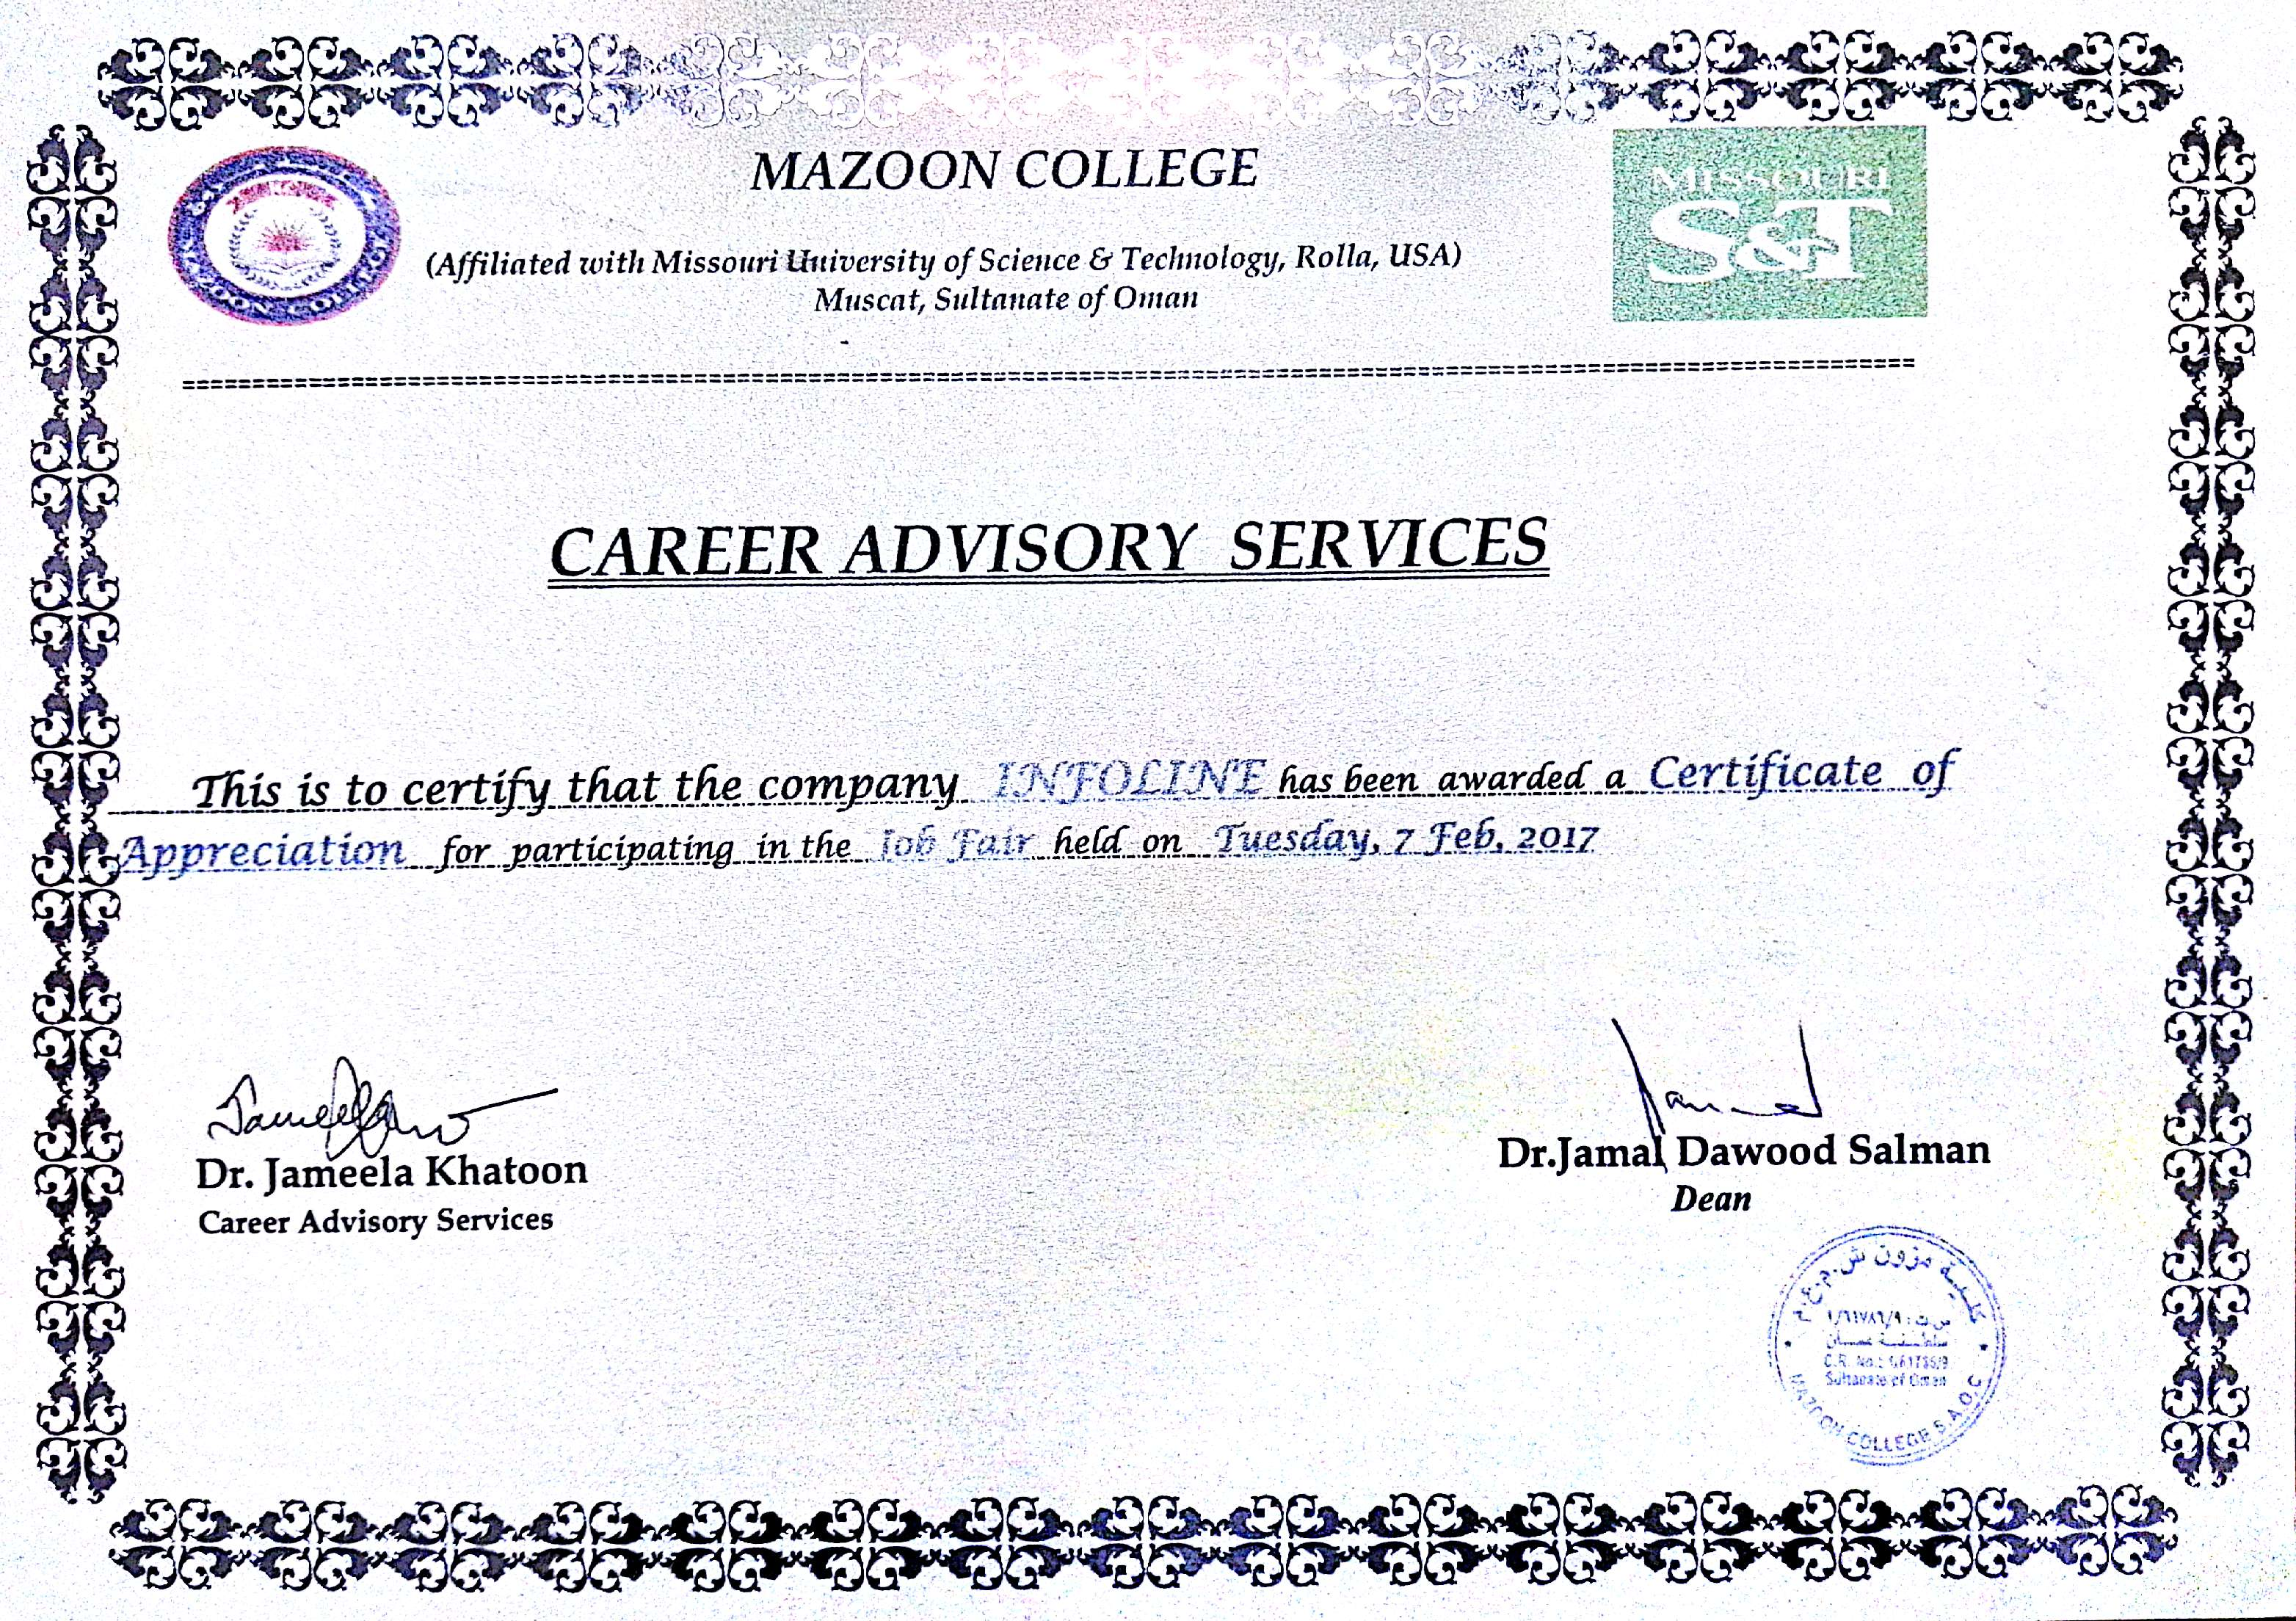 Infoline participates in Mazoon College Job Fair